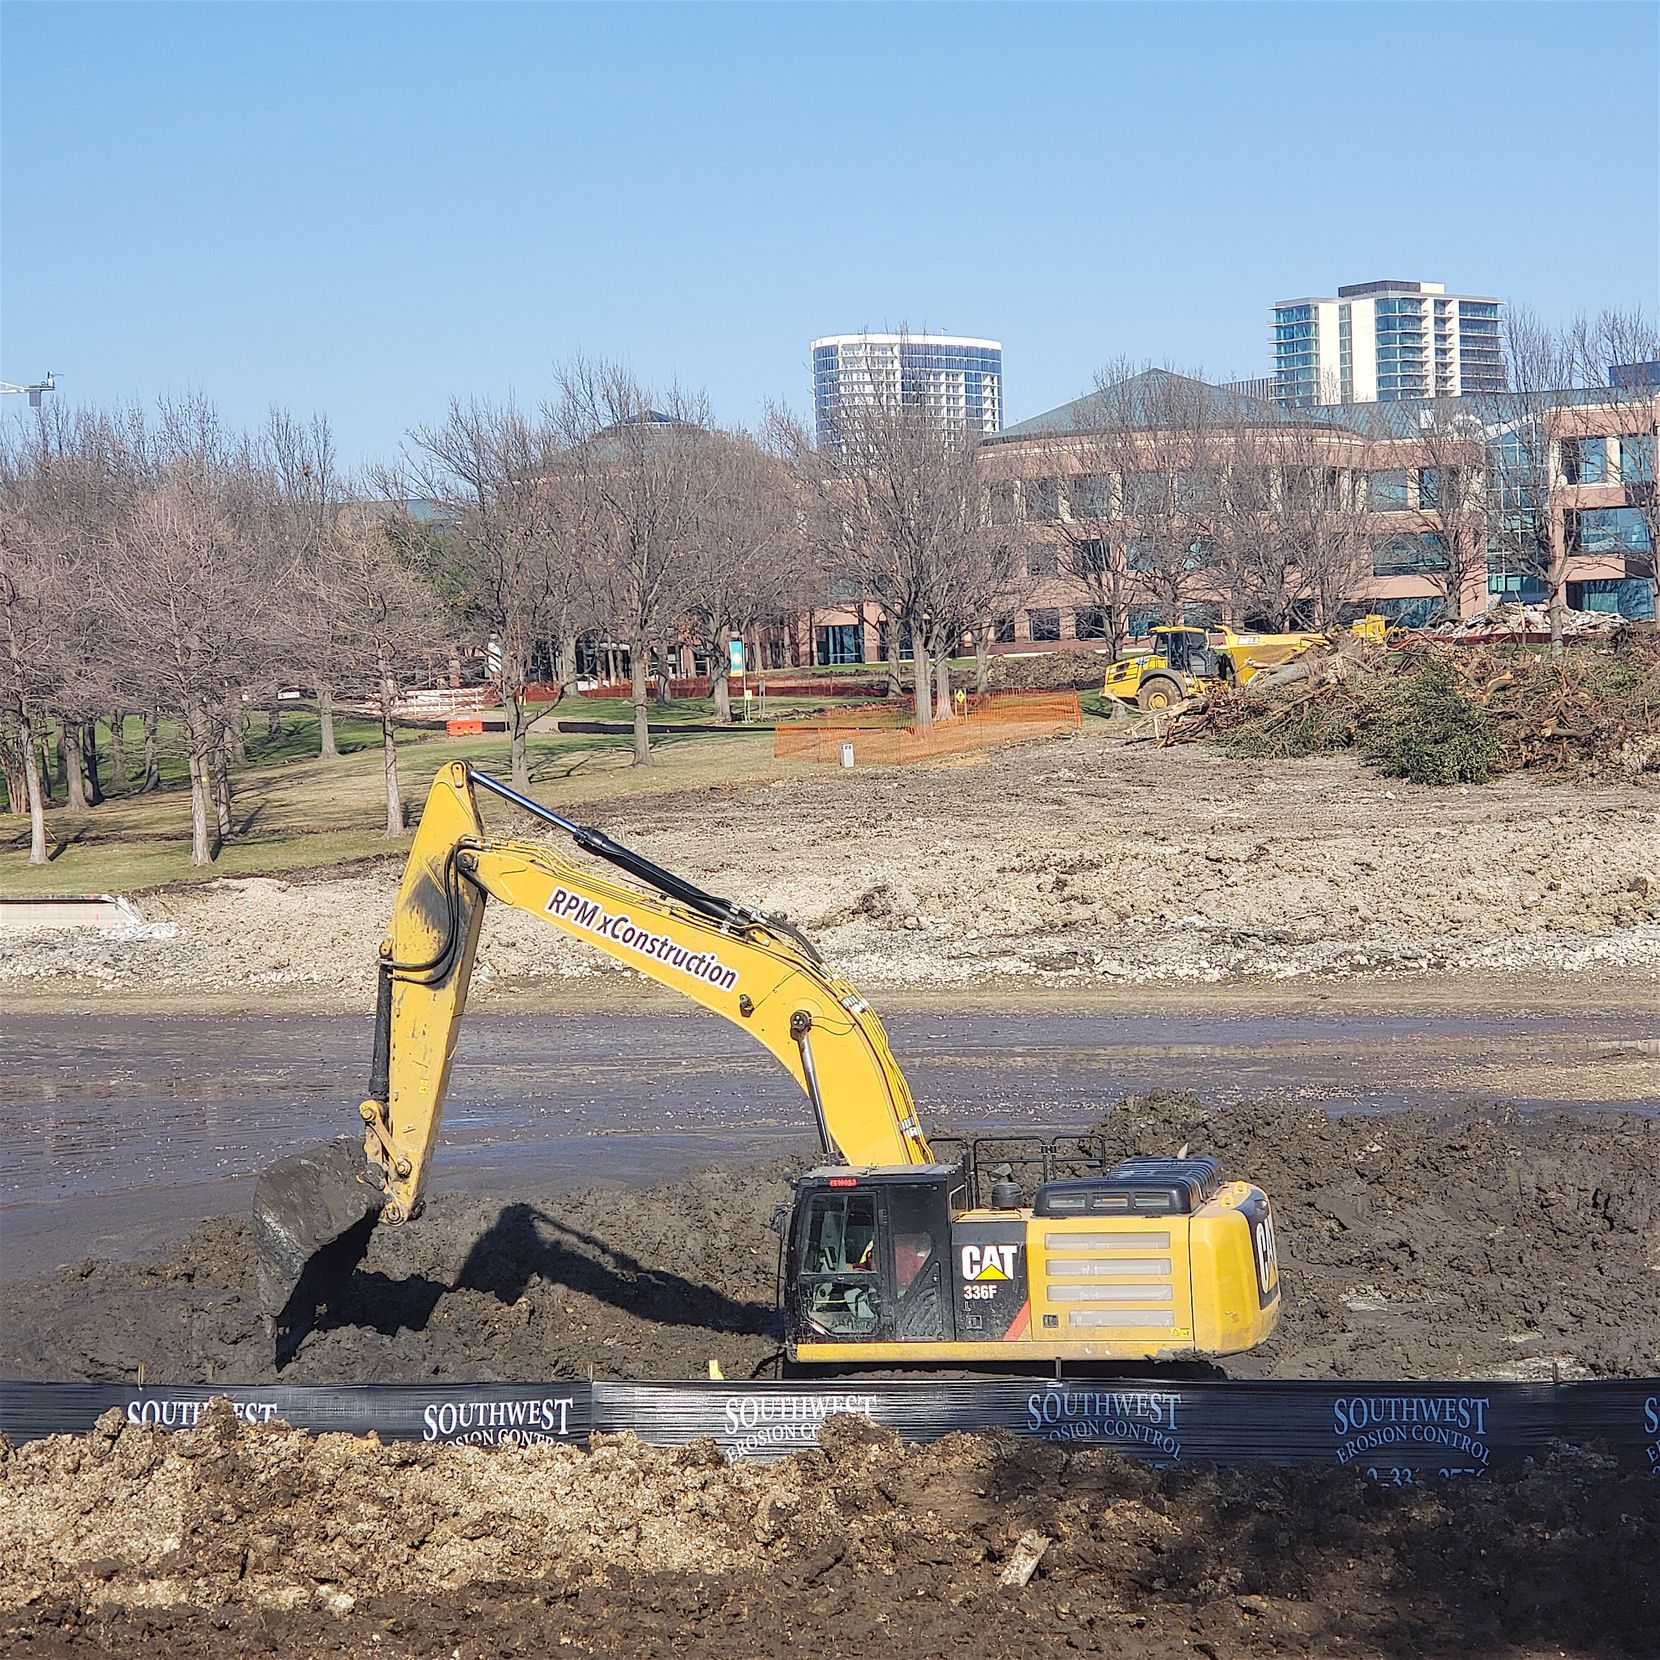 Sitework has started on the lakeshore for the new hotel.